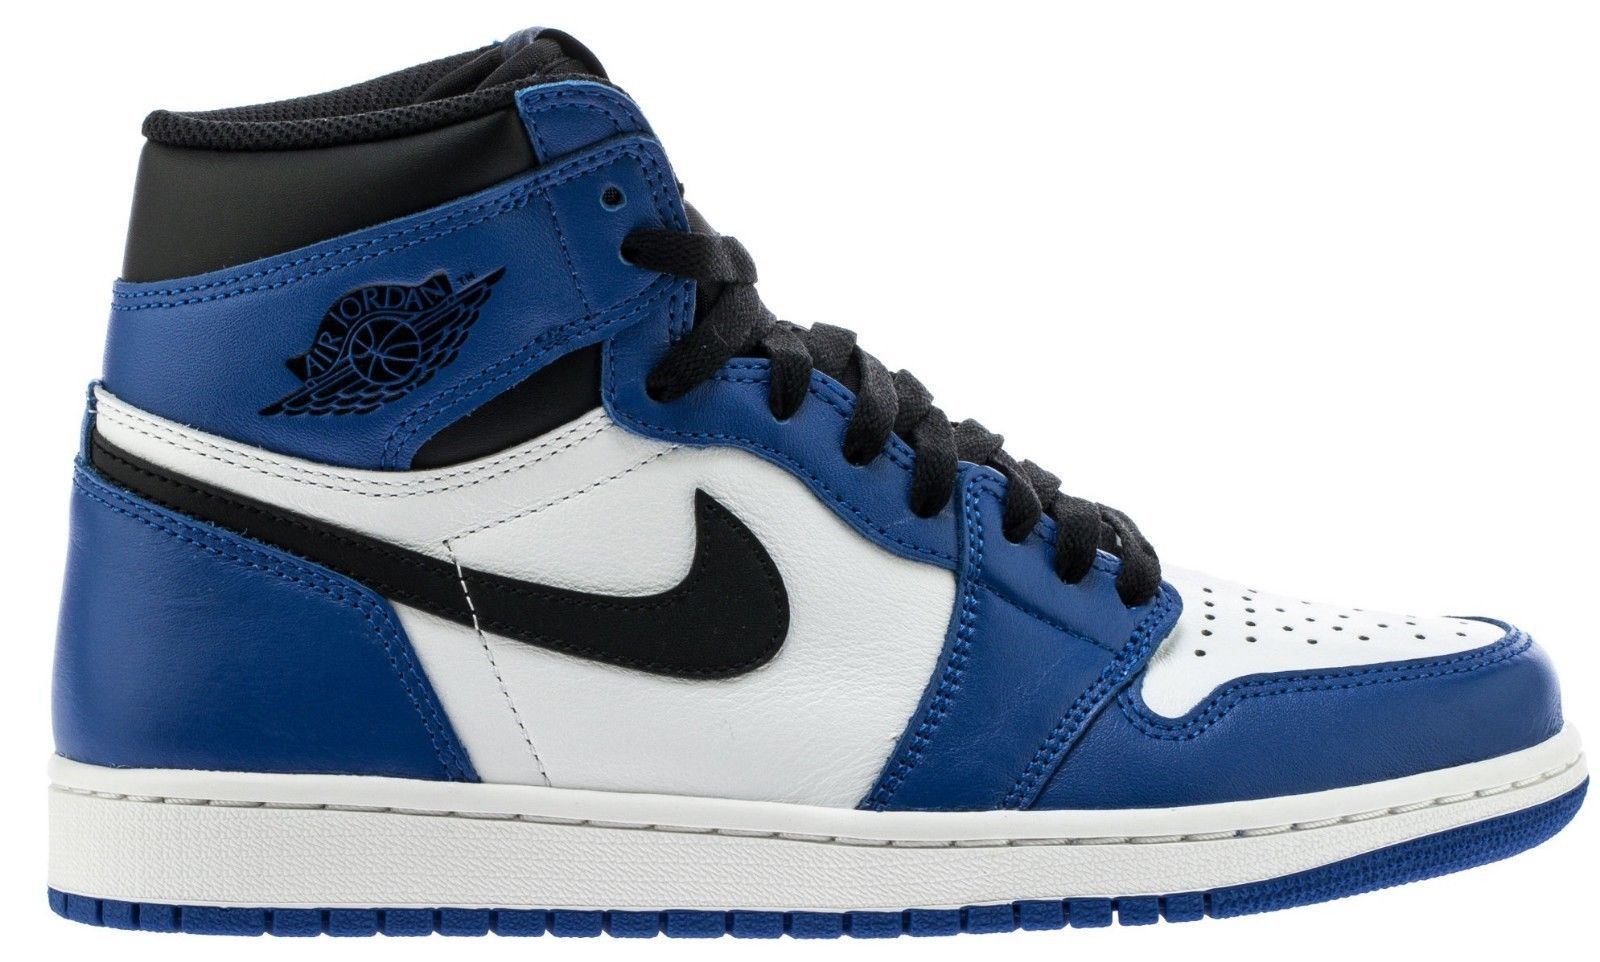 Nike Air Jordan 1 Game Royal Retro OG High Blue White 555088-403